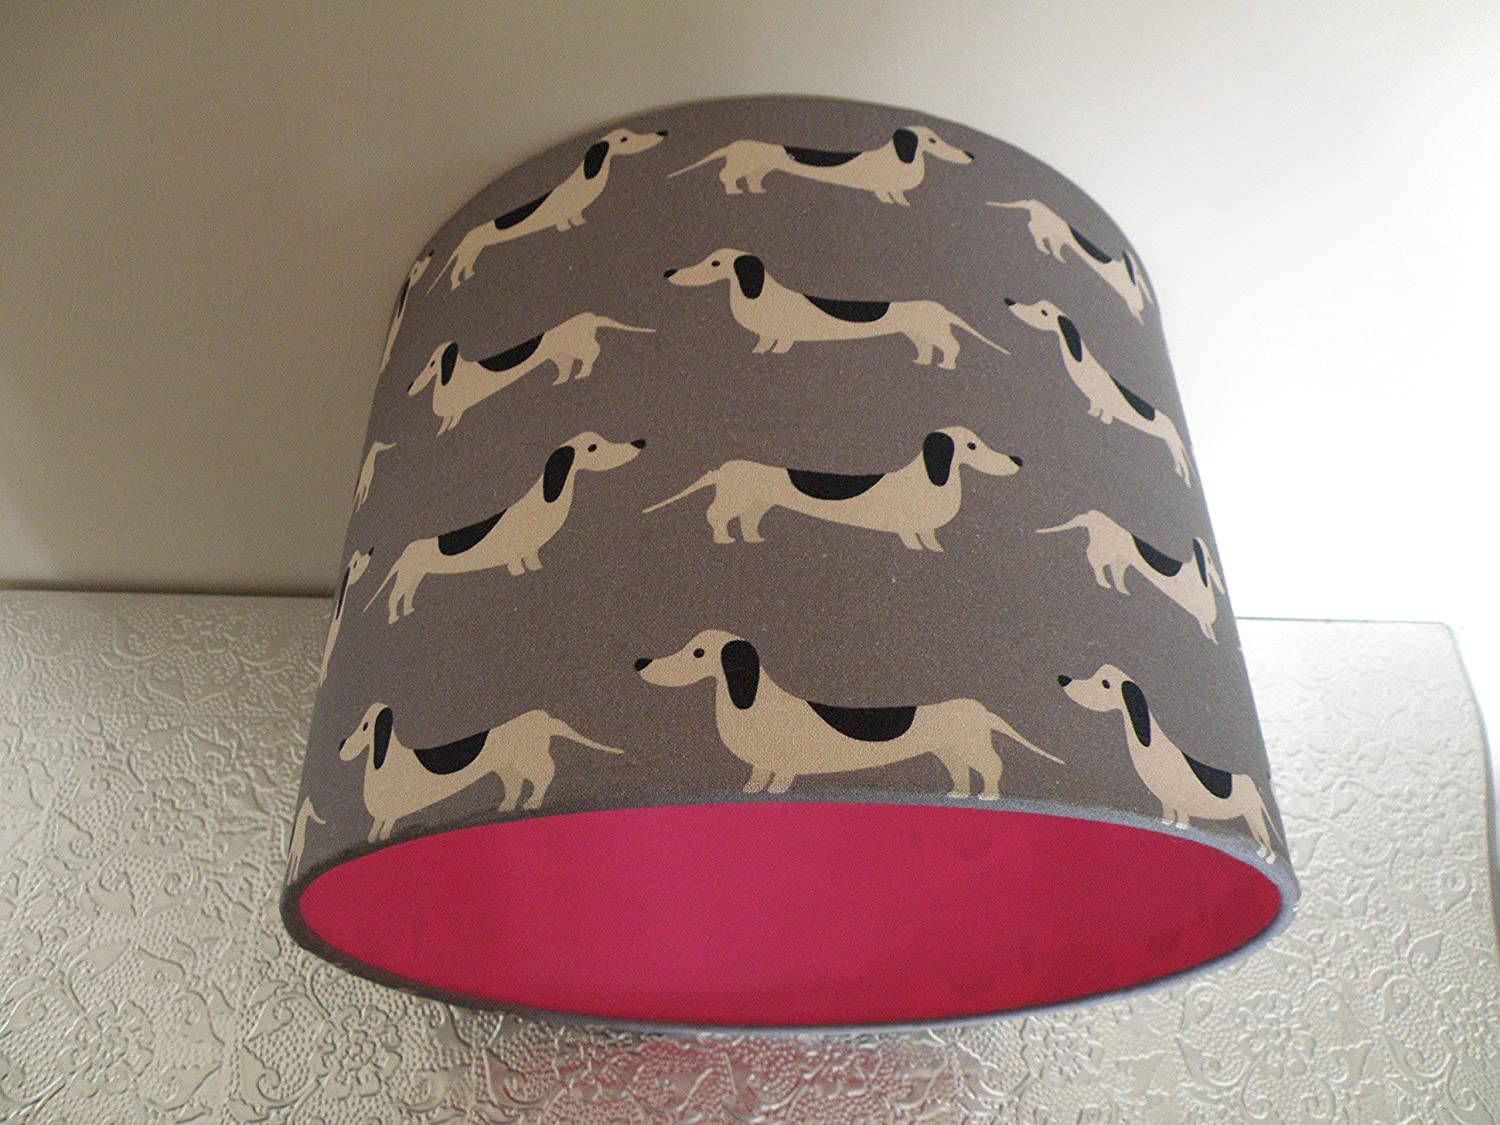 Dachshund/Sausage Dog Lampshade with a choice of fabric and liner